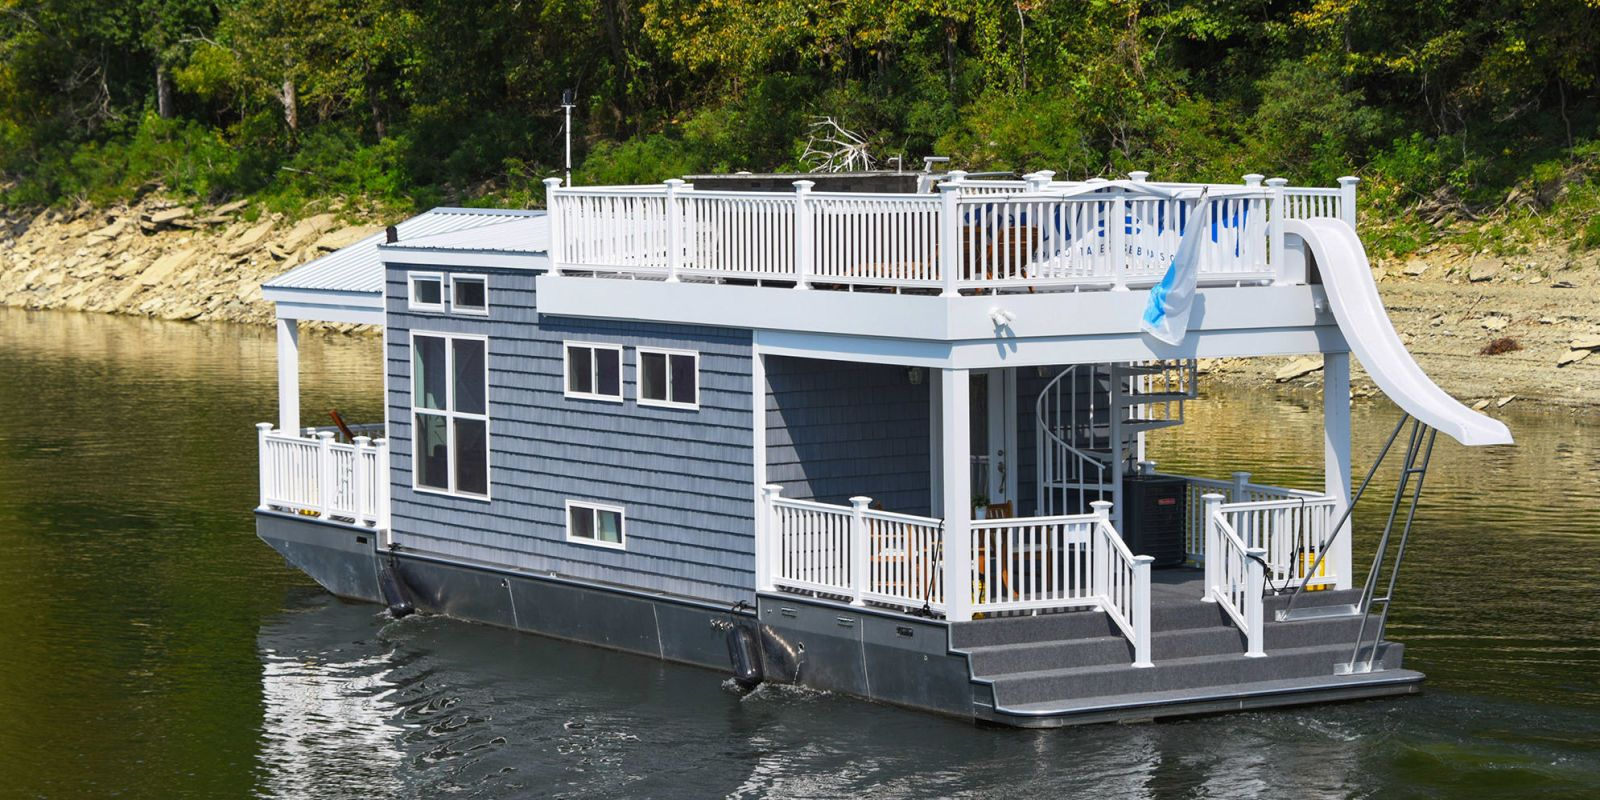 Peek Inside The Most Charming Houseboat Ever Houseboat